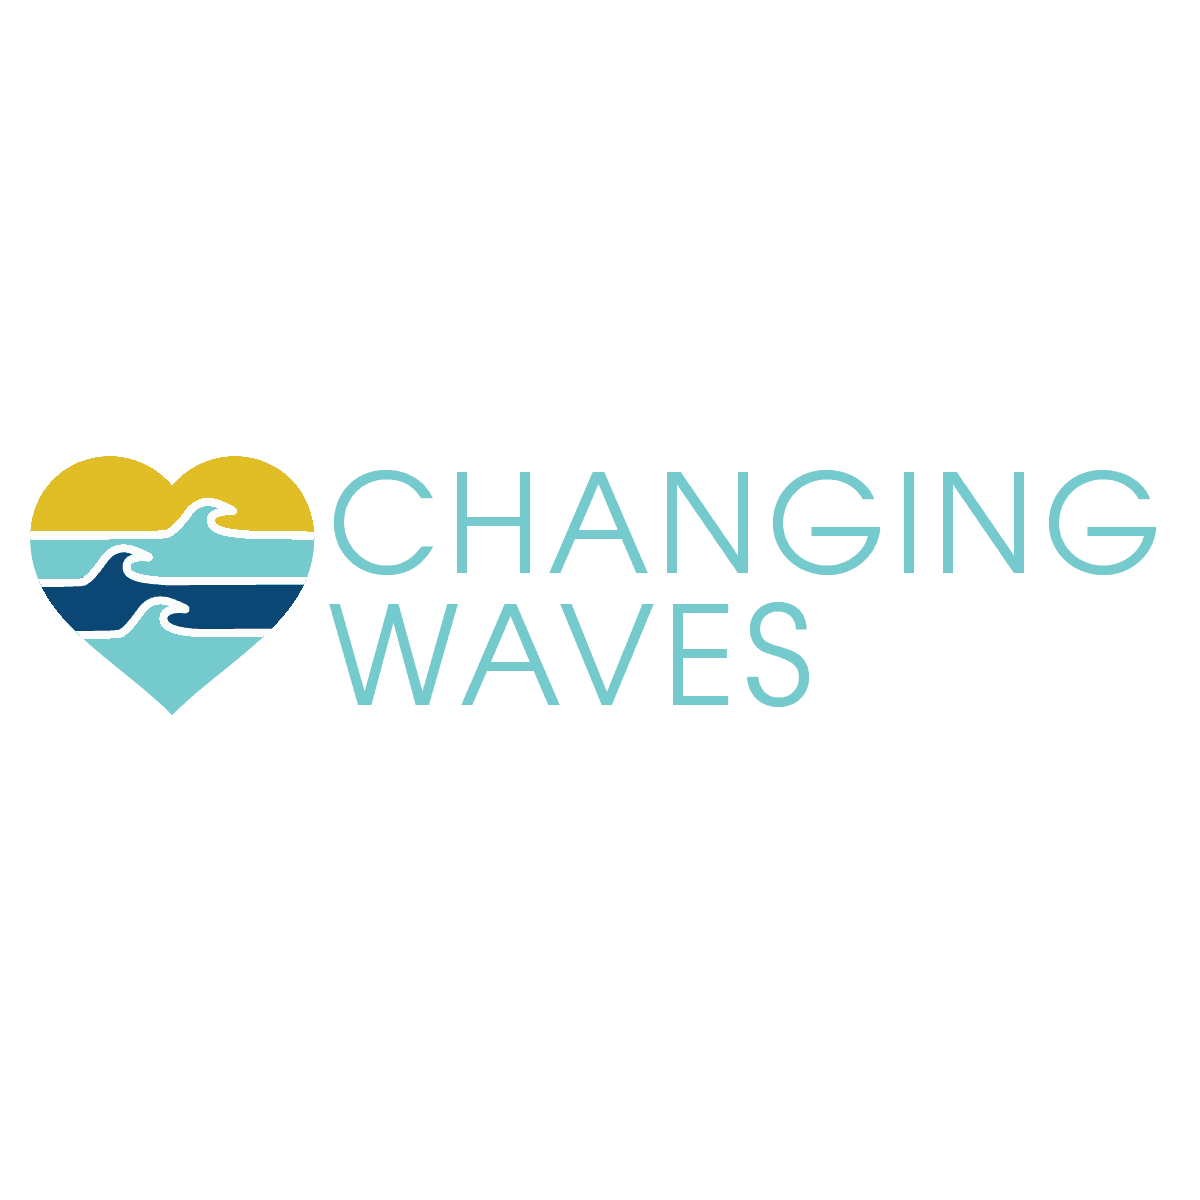 changingwaves_logo